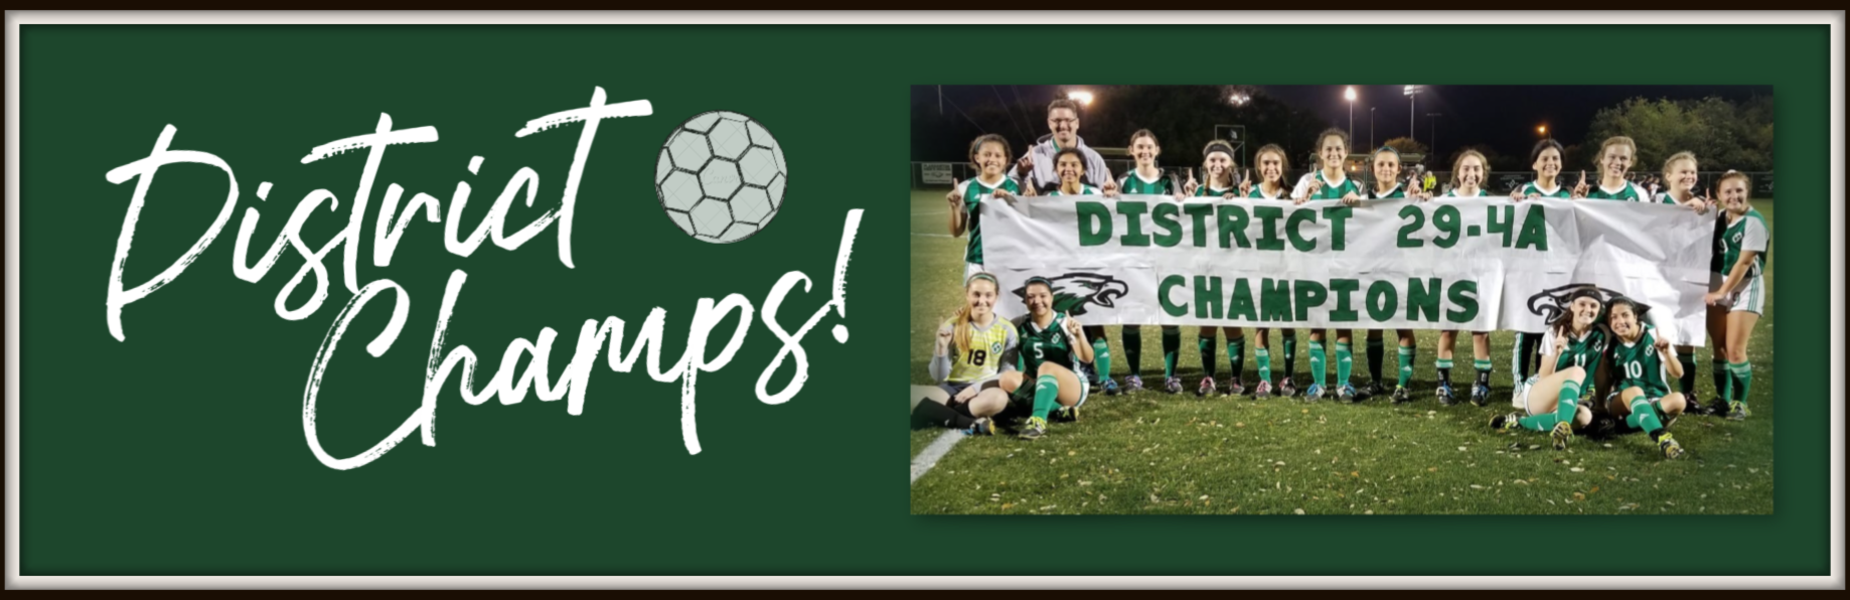 soccer district champs